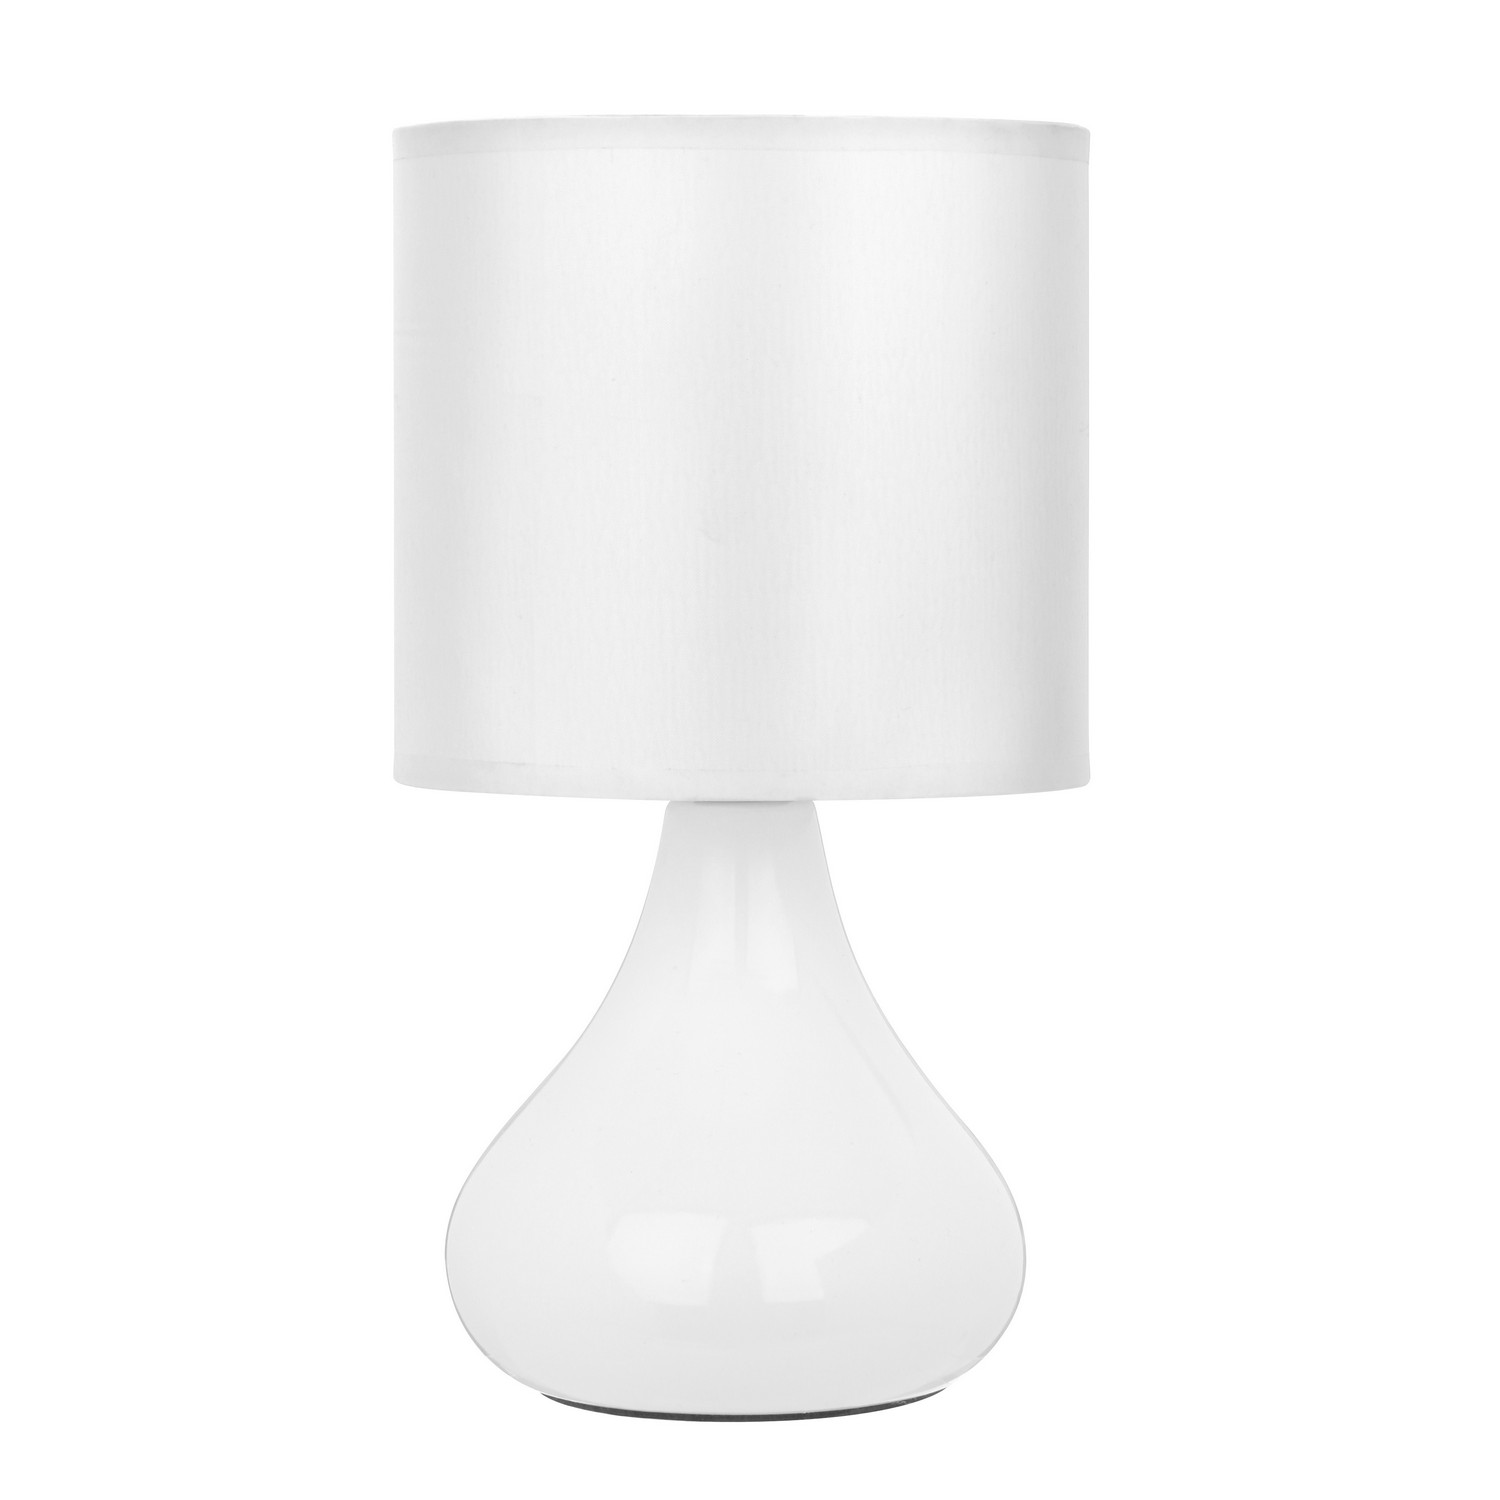 bulbus modern white ceramic fabric shade bedroom bedside desk table lamp light ebay. Black Bedroom Furniture Sets. Home Design Ideas